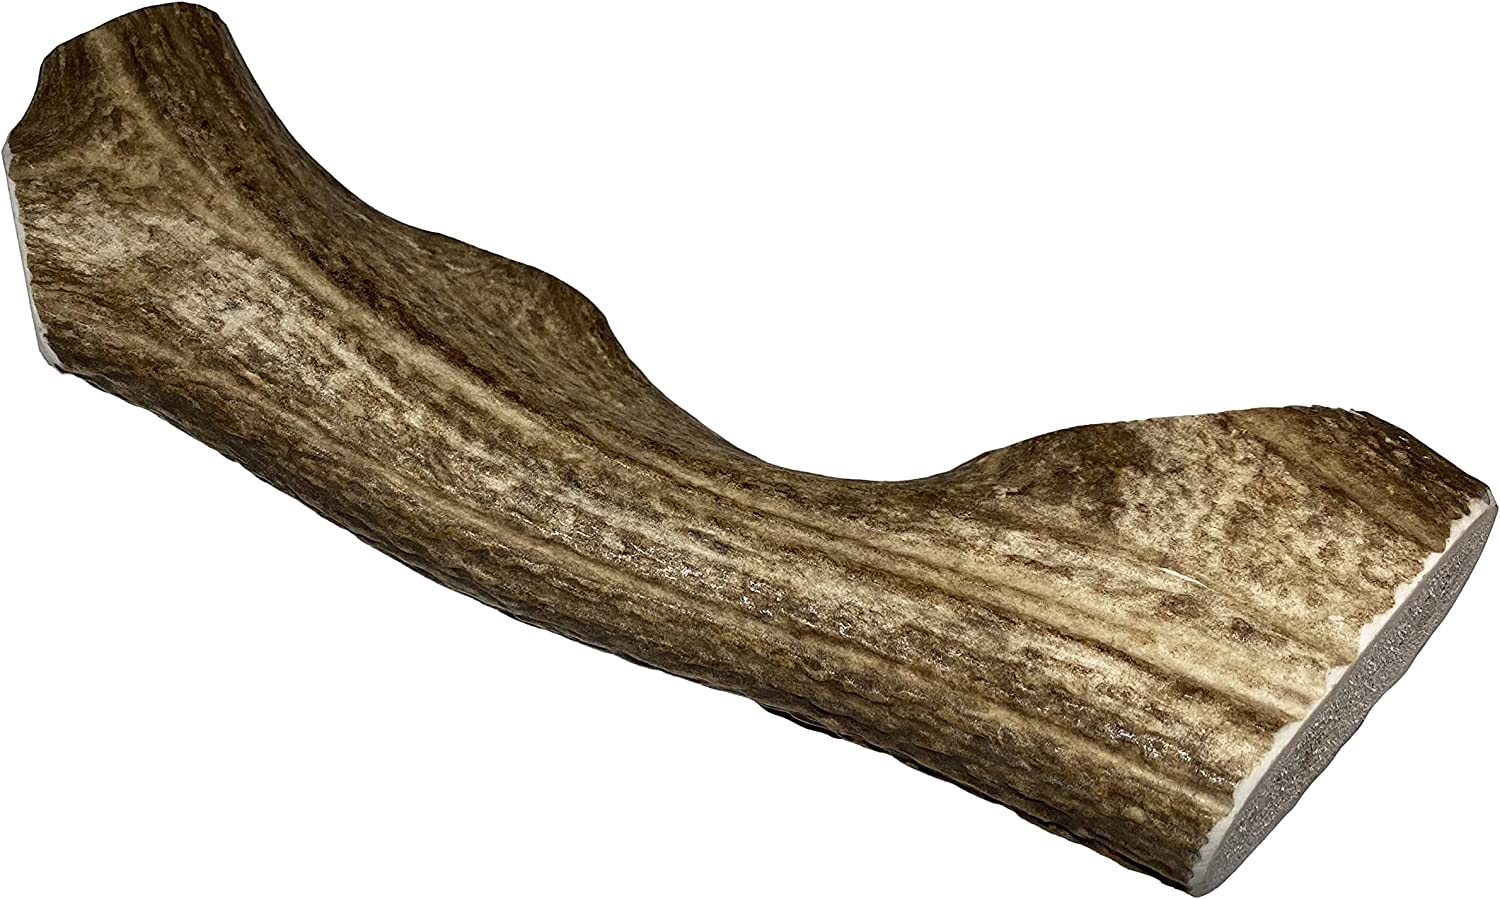 Elkhorn Premium Chews - Monster Whole (for 90+ lb Dogs) Premium Grade Elk Antler Dog Bone - Single Pack (1 Piece) - Long Lasting Chew Toy from Natural Shed Elk Antlers Sourced in The USA